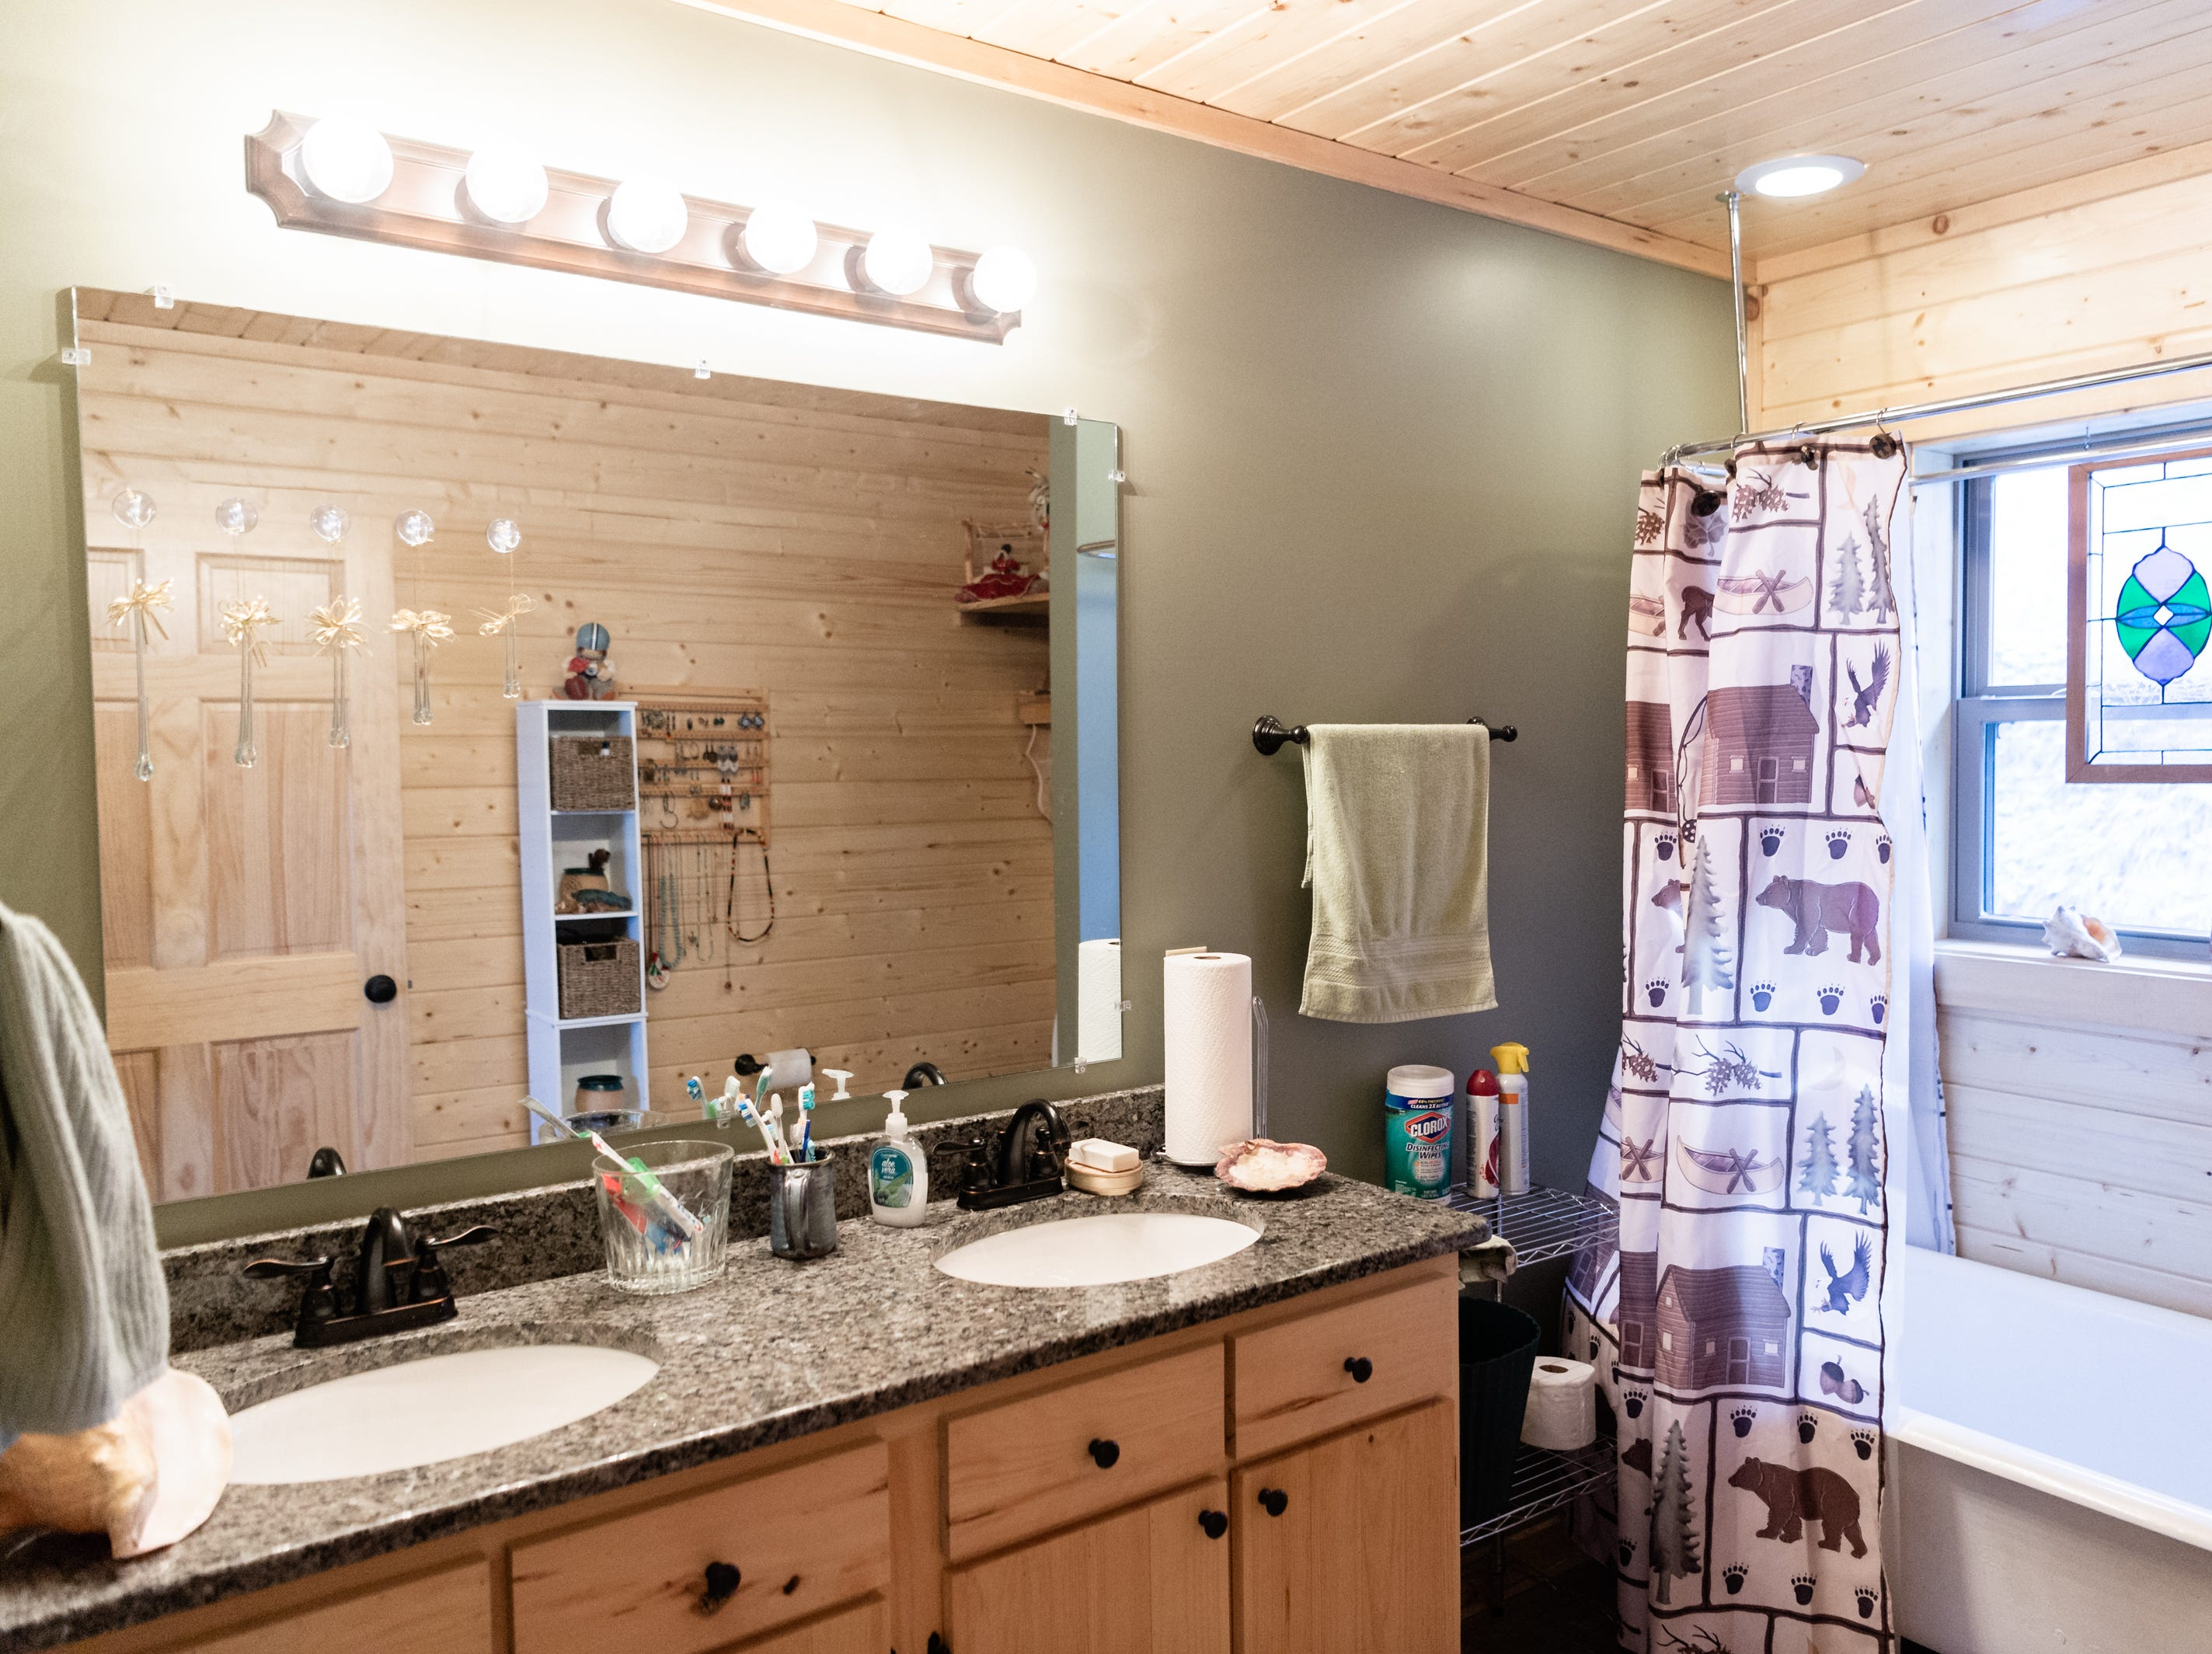 The master bathroom in the log cabin home of Vangie Stephens and Tommy Stephens in Cherokee which was designed by Vangie.